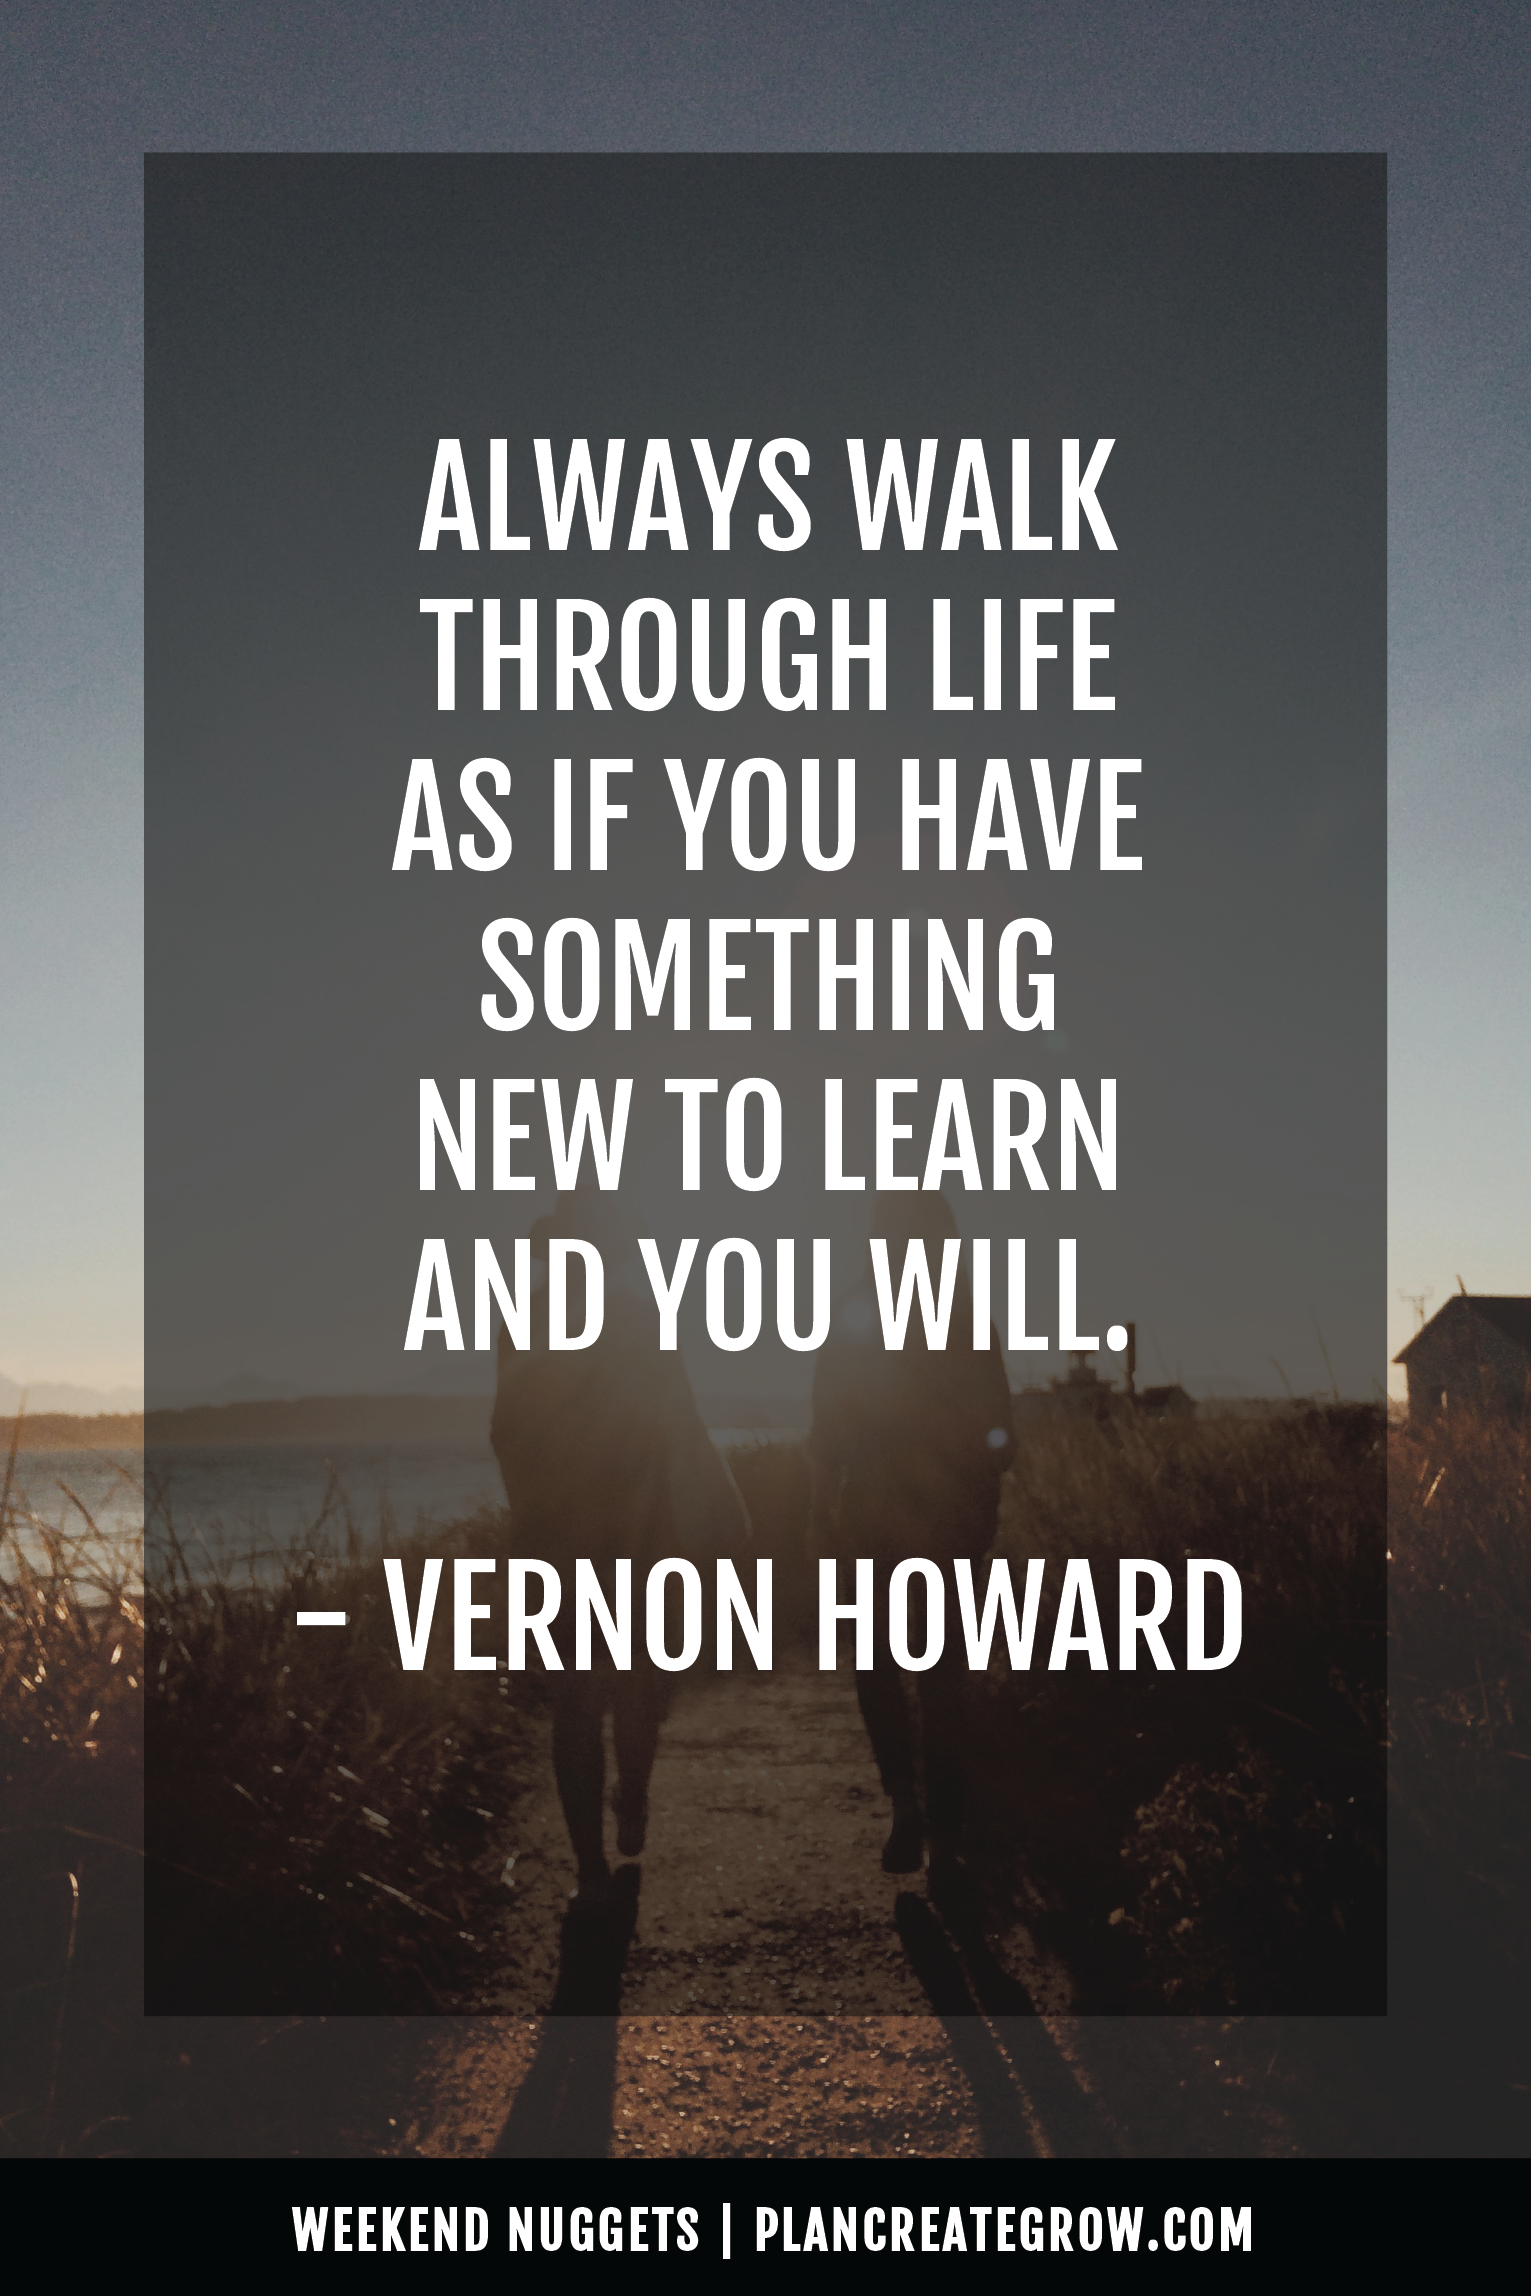 """""""Always walk through life as if you have something new to learn."""" - Vernon Howard  This image forms part of a series called Weekend Nuggets - a collection of quotes and ideas curated to delight and inspire - shared each weekend. For more, visit plancreategrow.com/weekend-nuggets."""